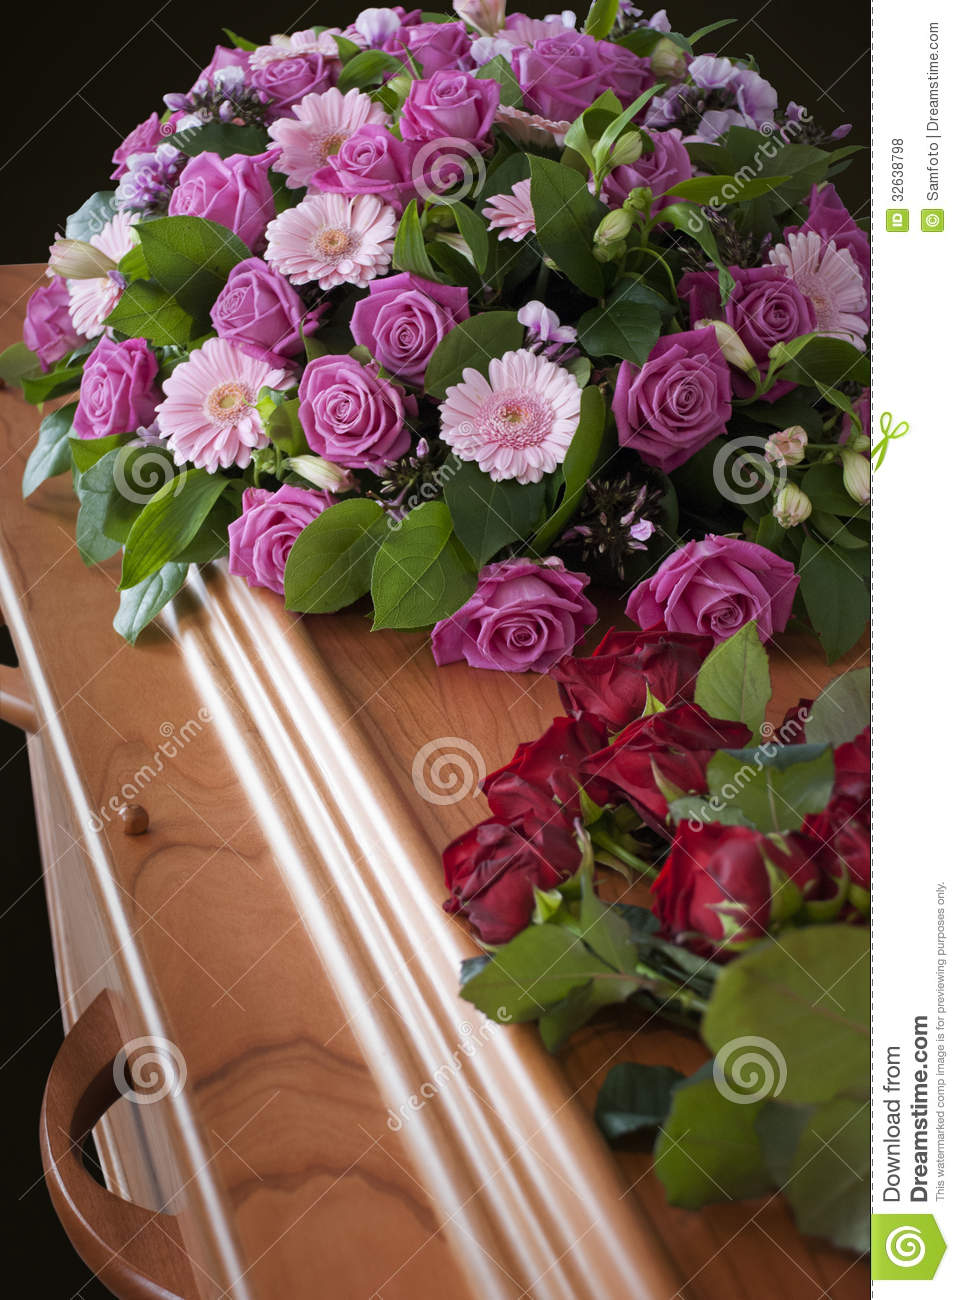 Funeral Flowers On A Casket Stock Photo Image Of Flower Rose